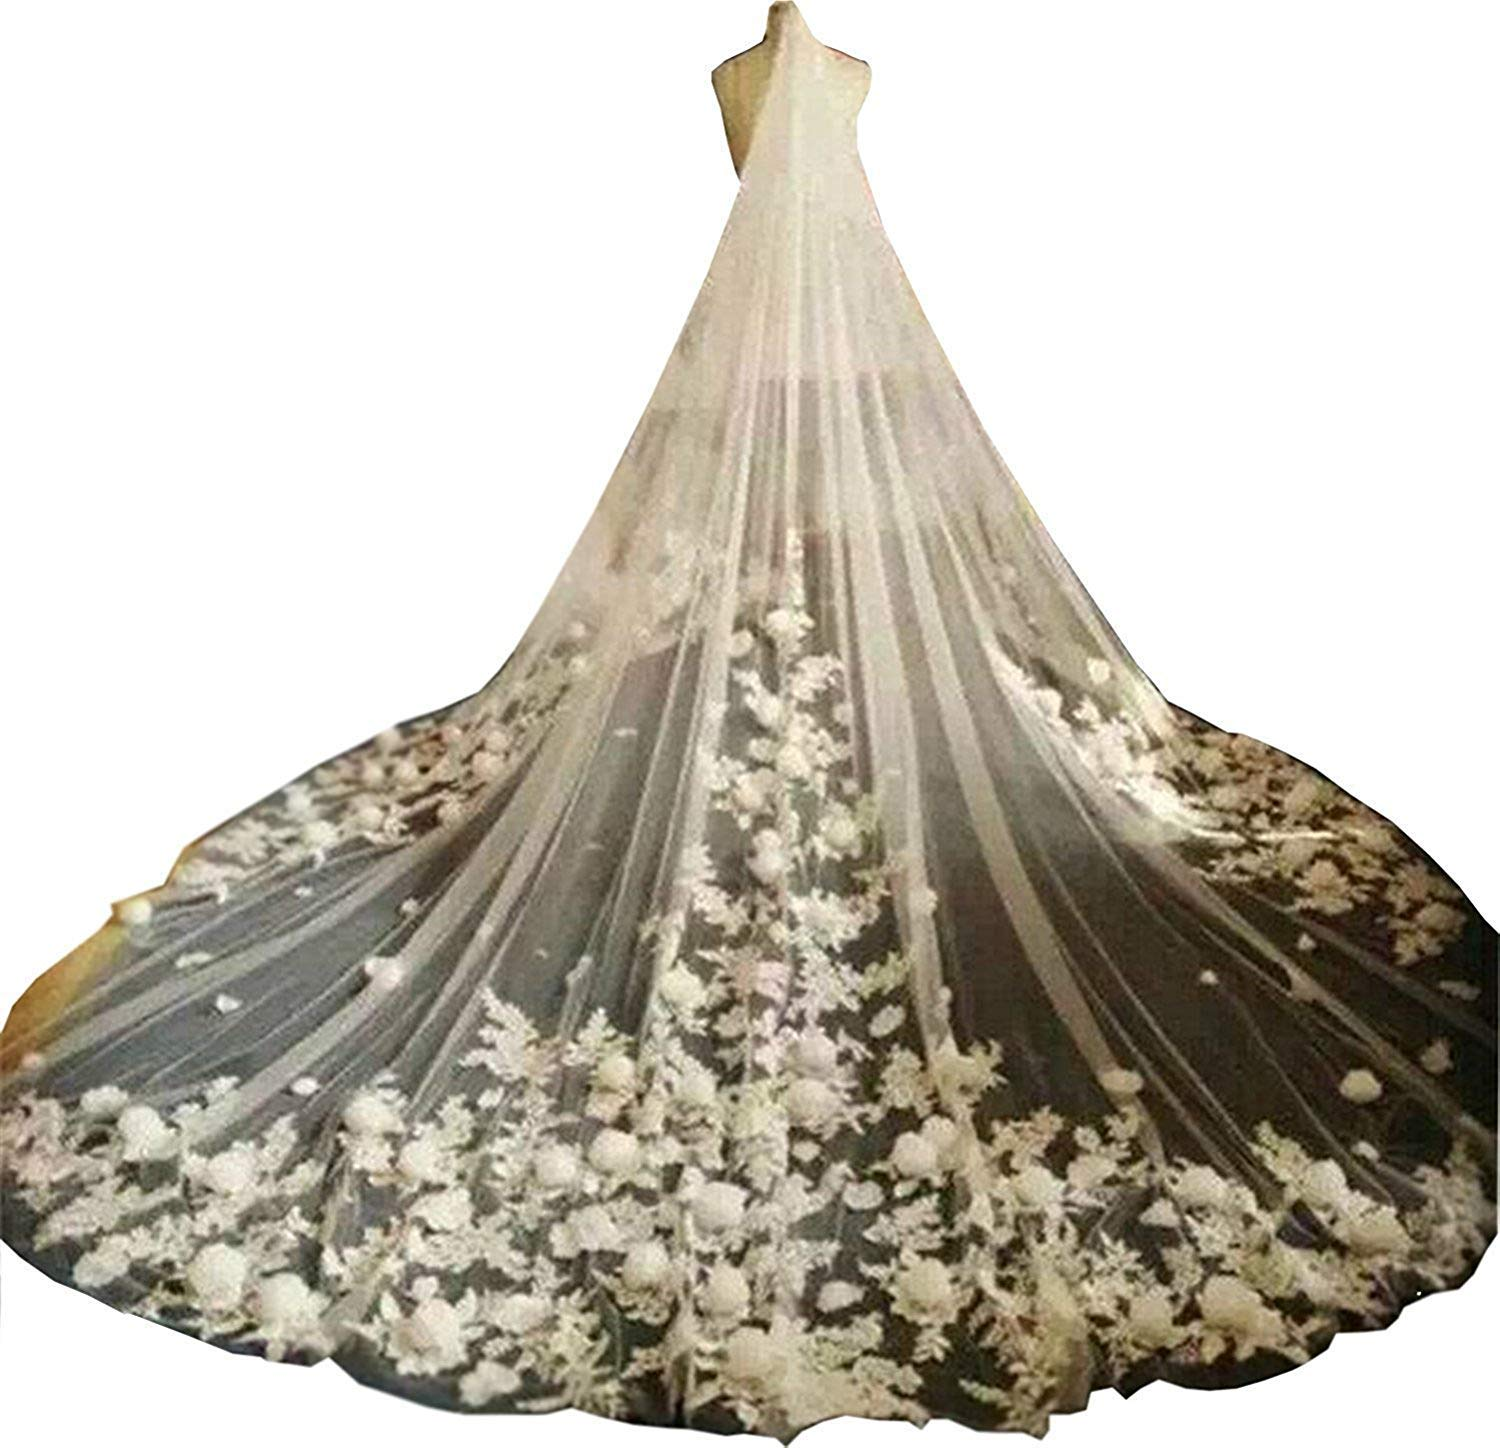 Fenghuavip Ivory Tulle 1T Brides Veils 5M Cathedral Long 3D Flower Veil with Comb (5 meters, White)